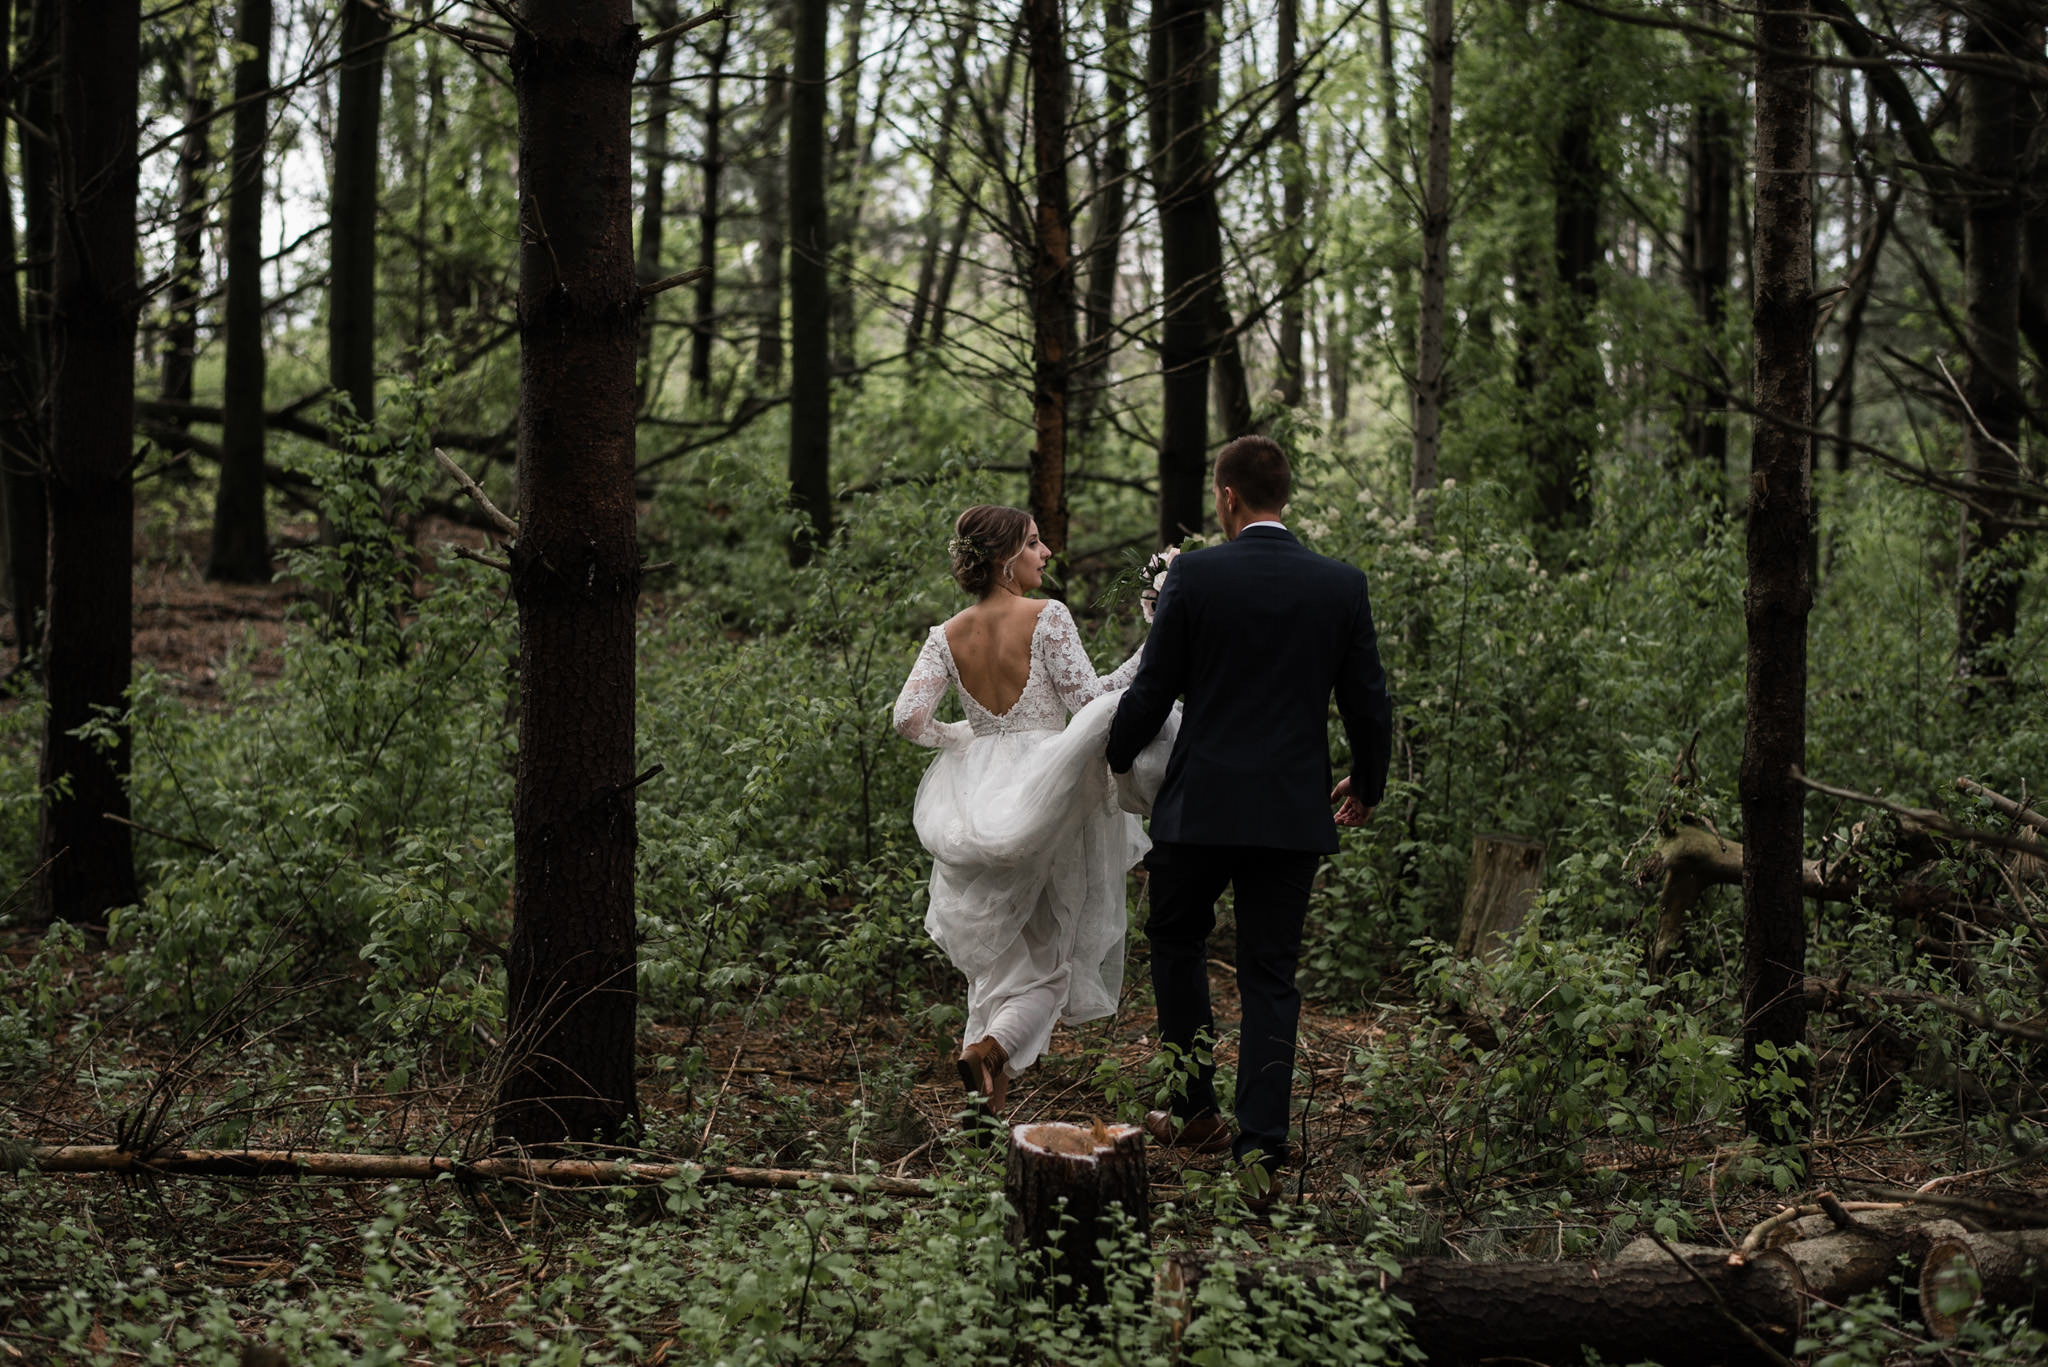 161-forest-wedding-couple-photos-long-sleeve-lace-dress-toronto.jpg